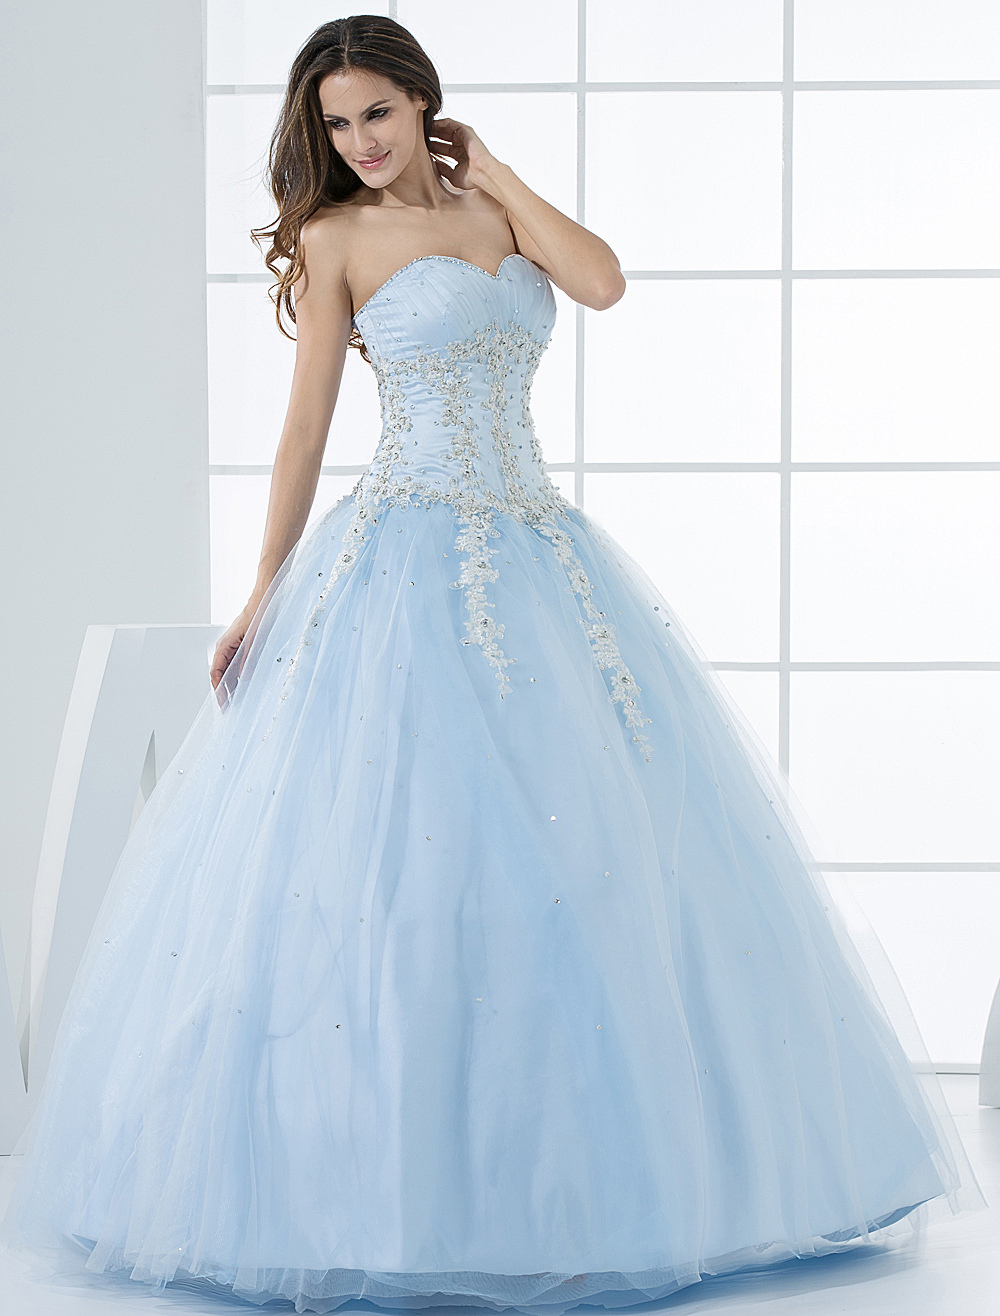 Princess Wedding Dresses Pastel Blue Quinceanera Dress Lace Applique ...